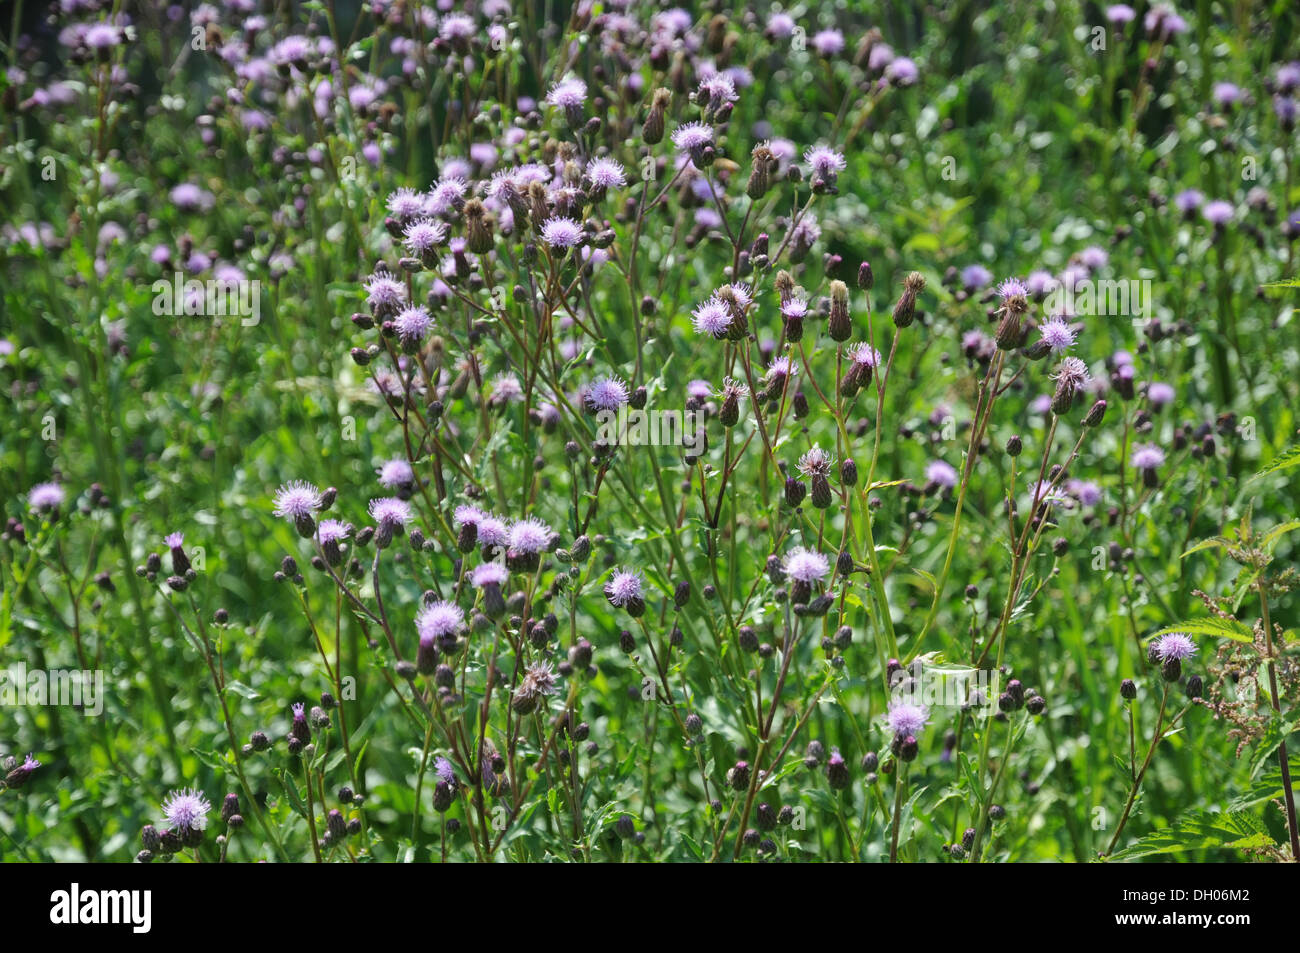 Spear Thistles - Stock Image